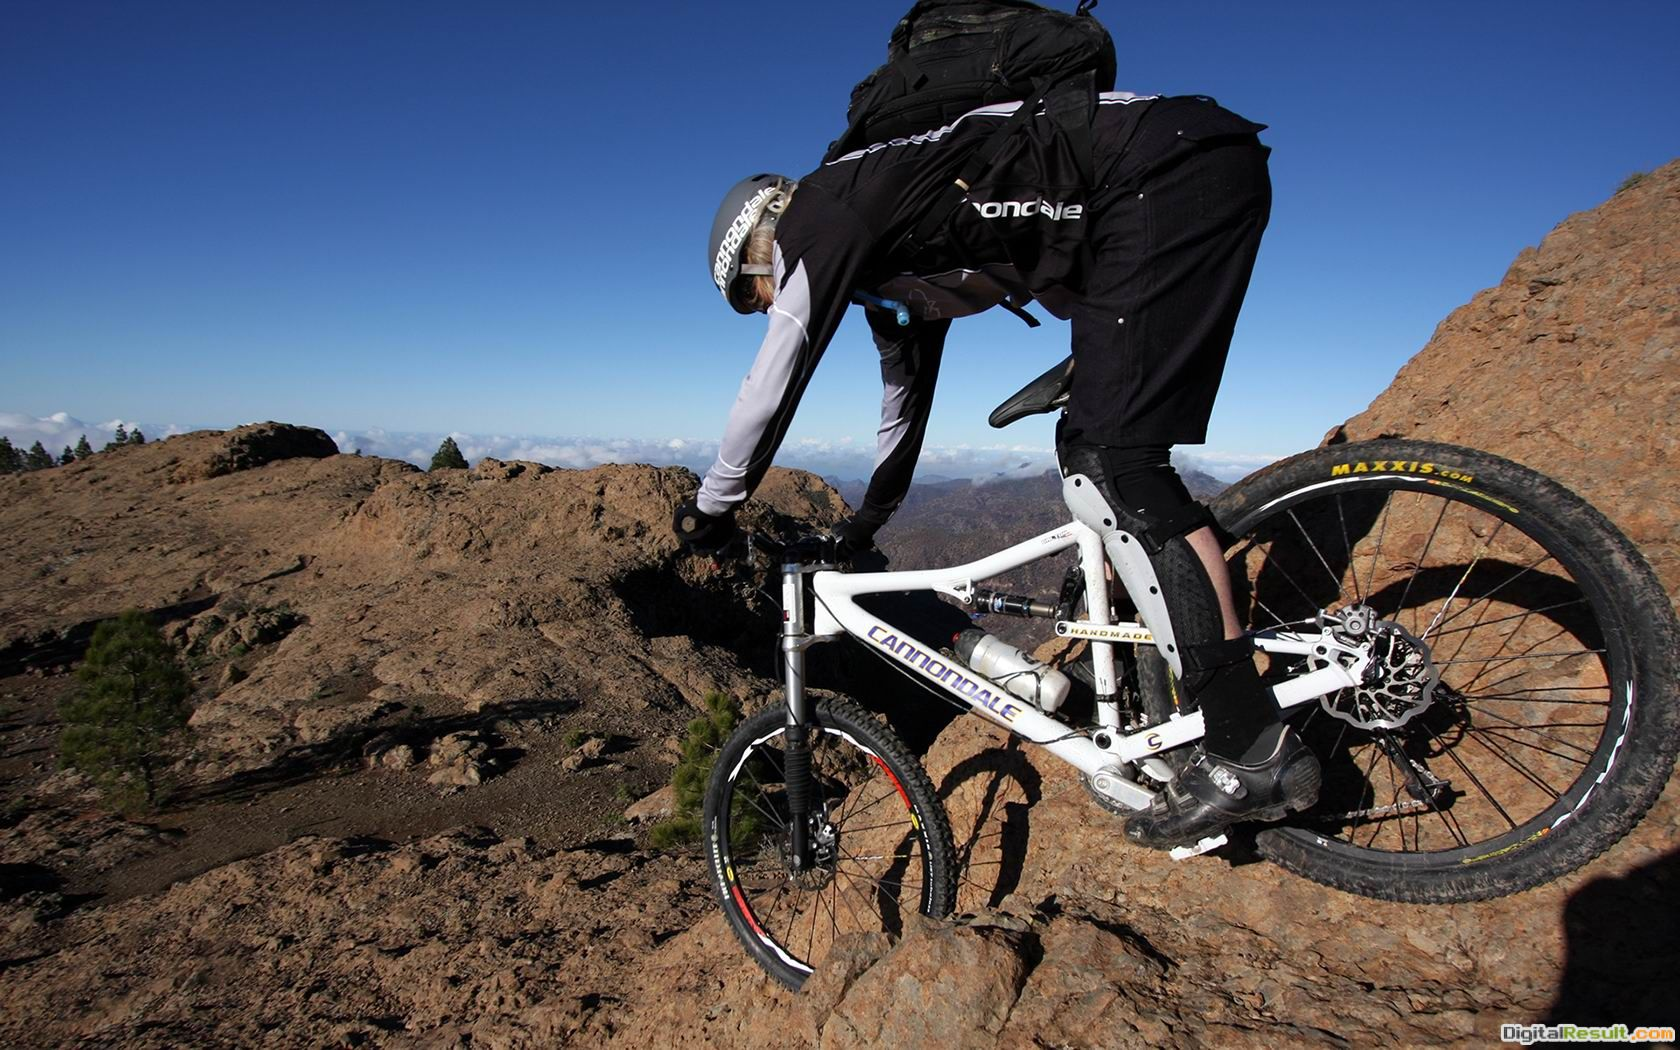 Specialized Mountain Biking Wallpaper Download high quality mountain 1197